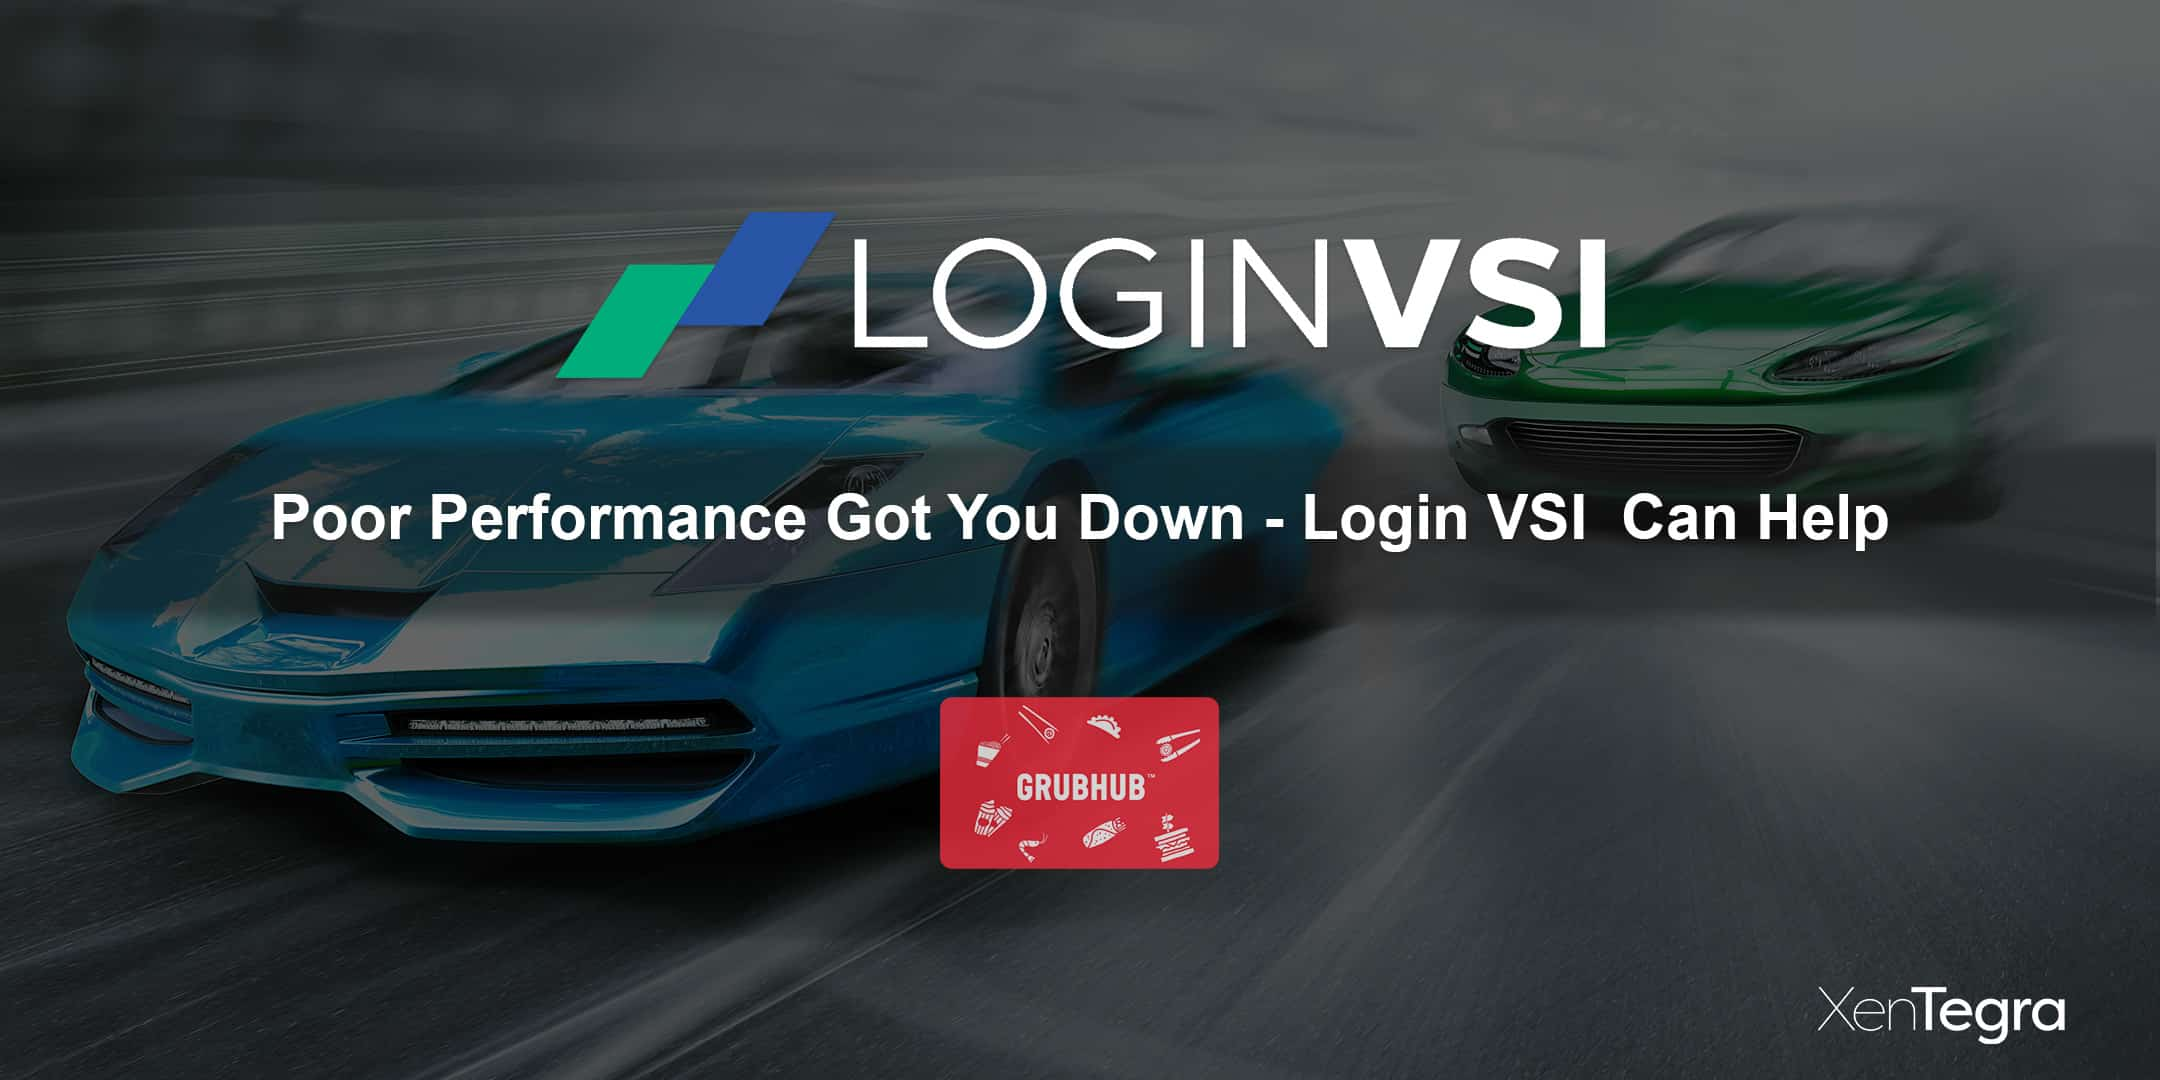 Poor Performance Got You Down - Login VSI Can Help